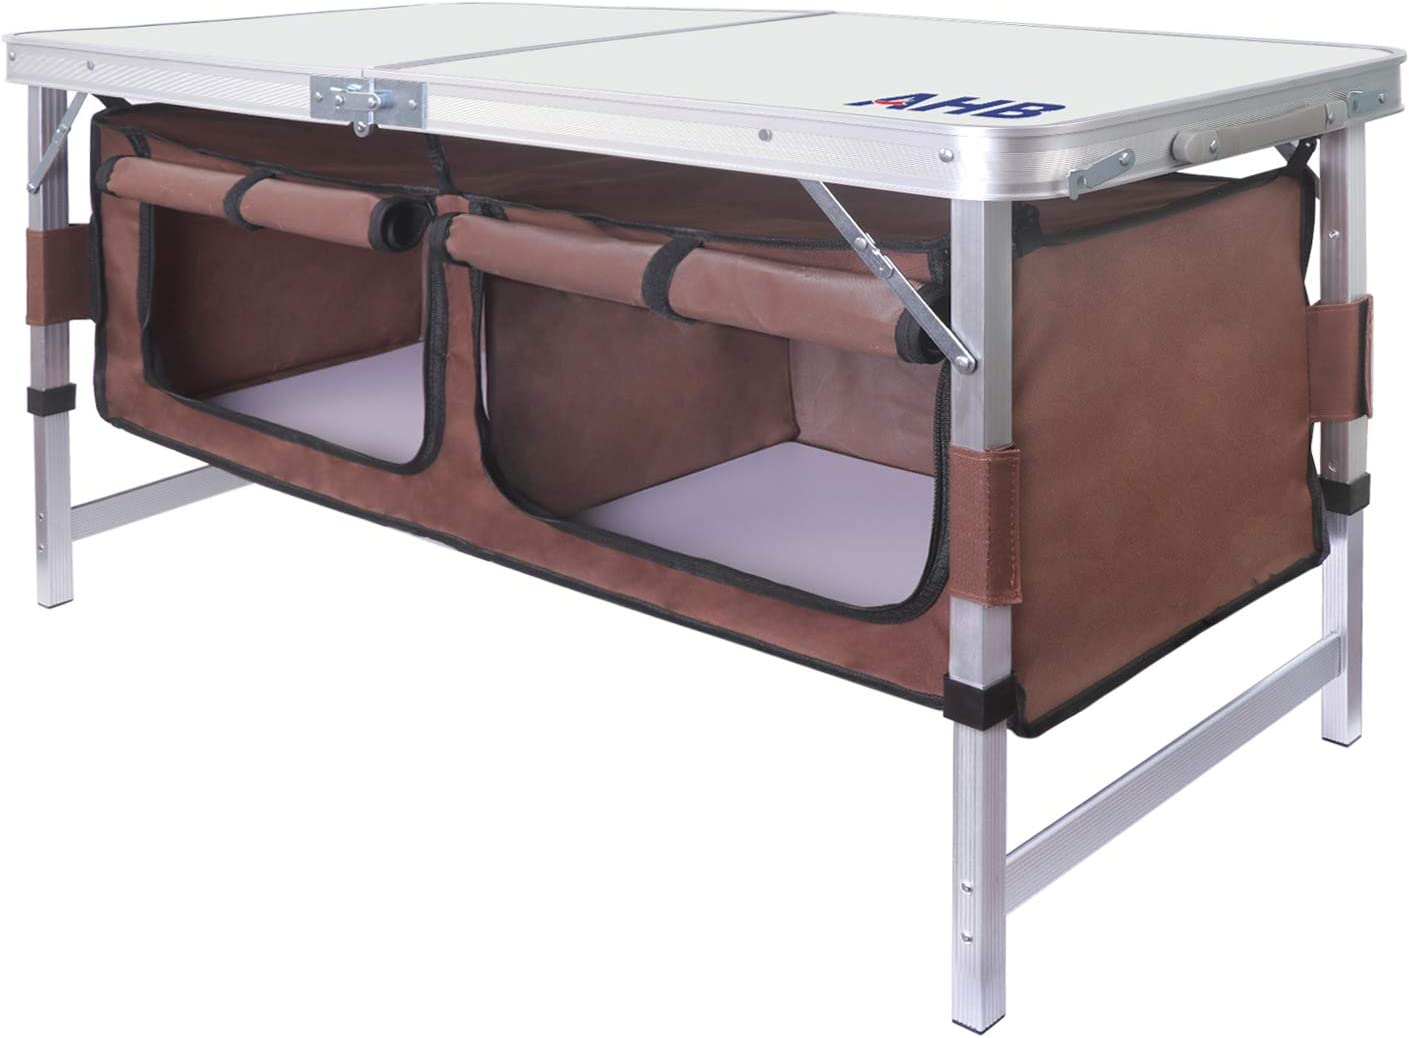 AHB Outdoor Folding Camp Table with Storage Organizer, Aluminum Lightweight Adjustable Picnic Table, Portable Foldable Table for Camping, Picnic, Outdoor